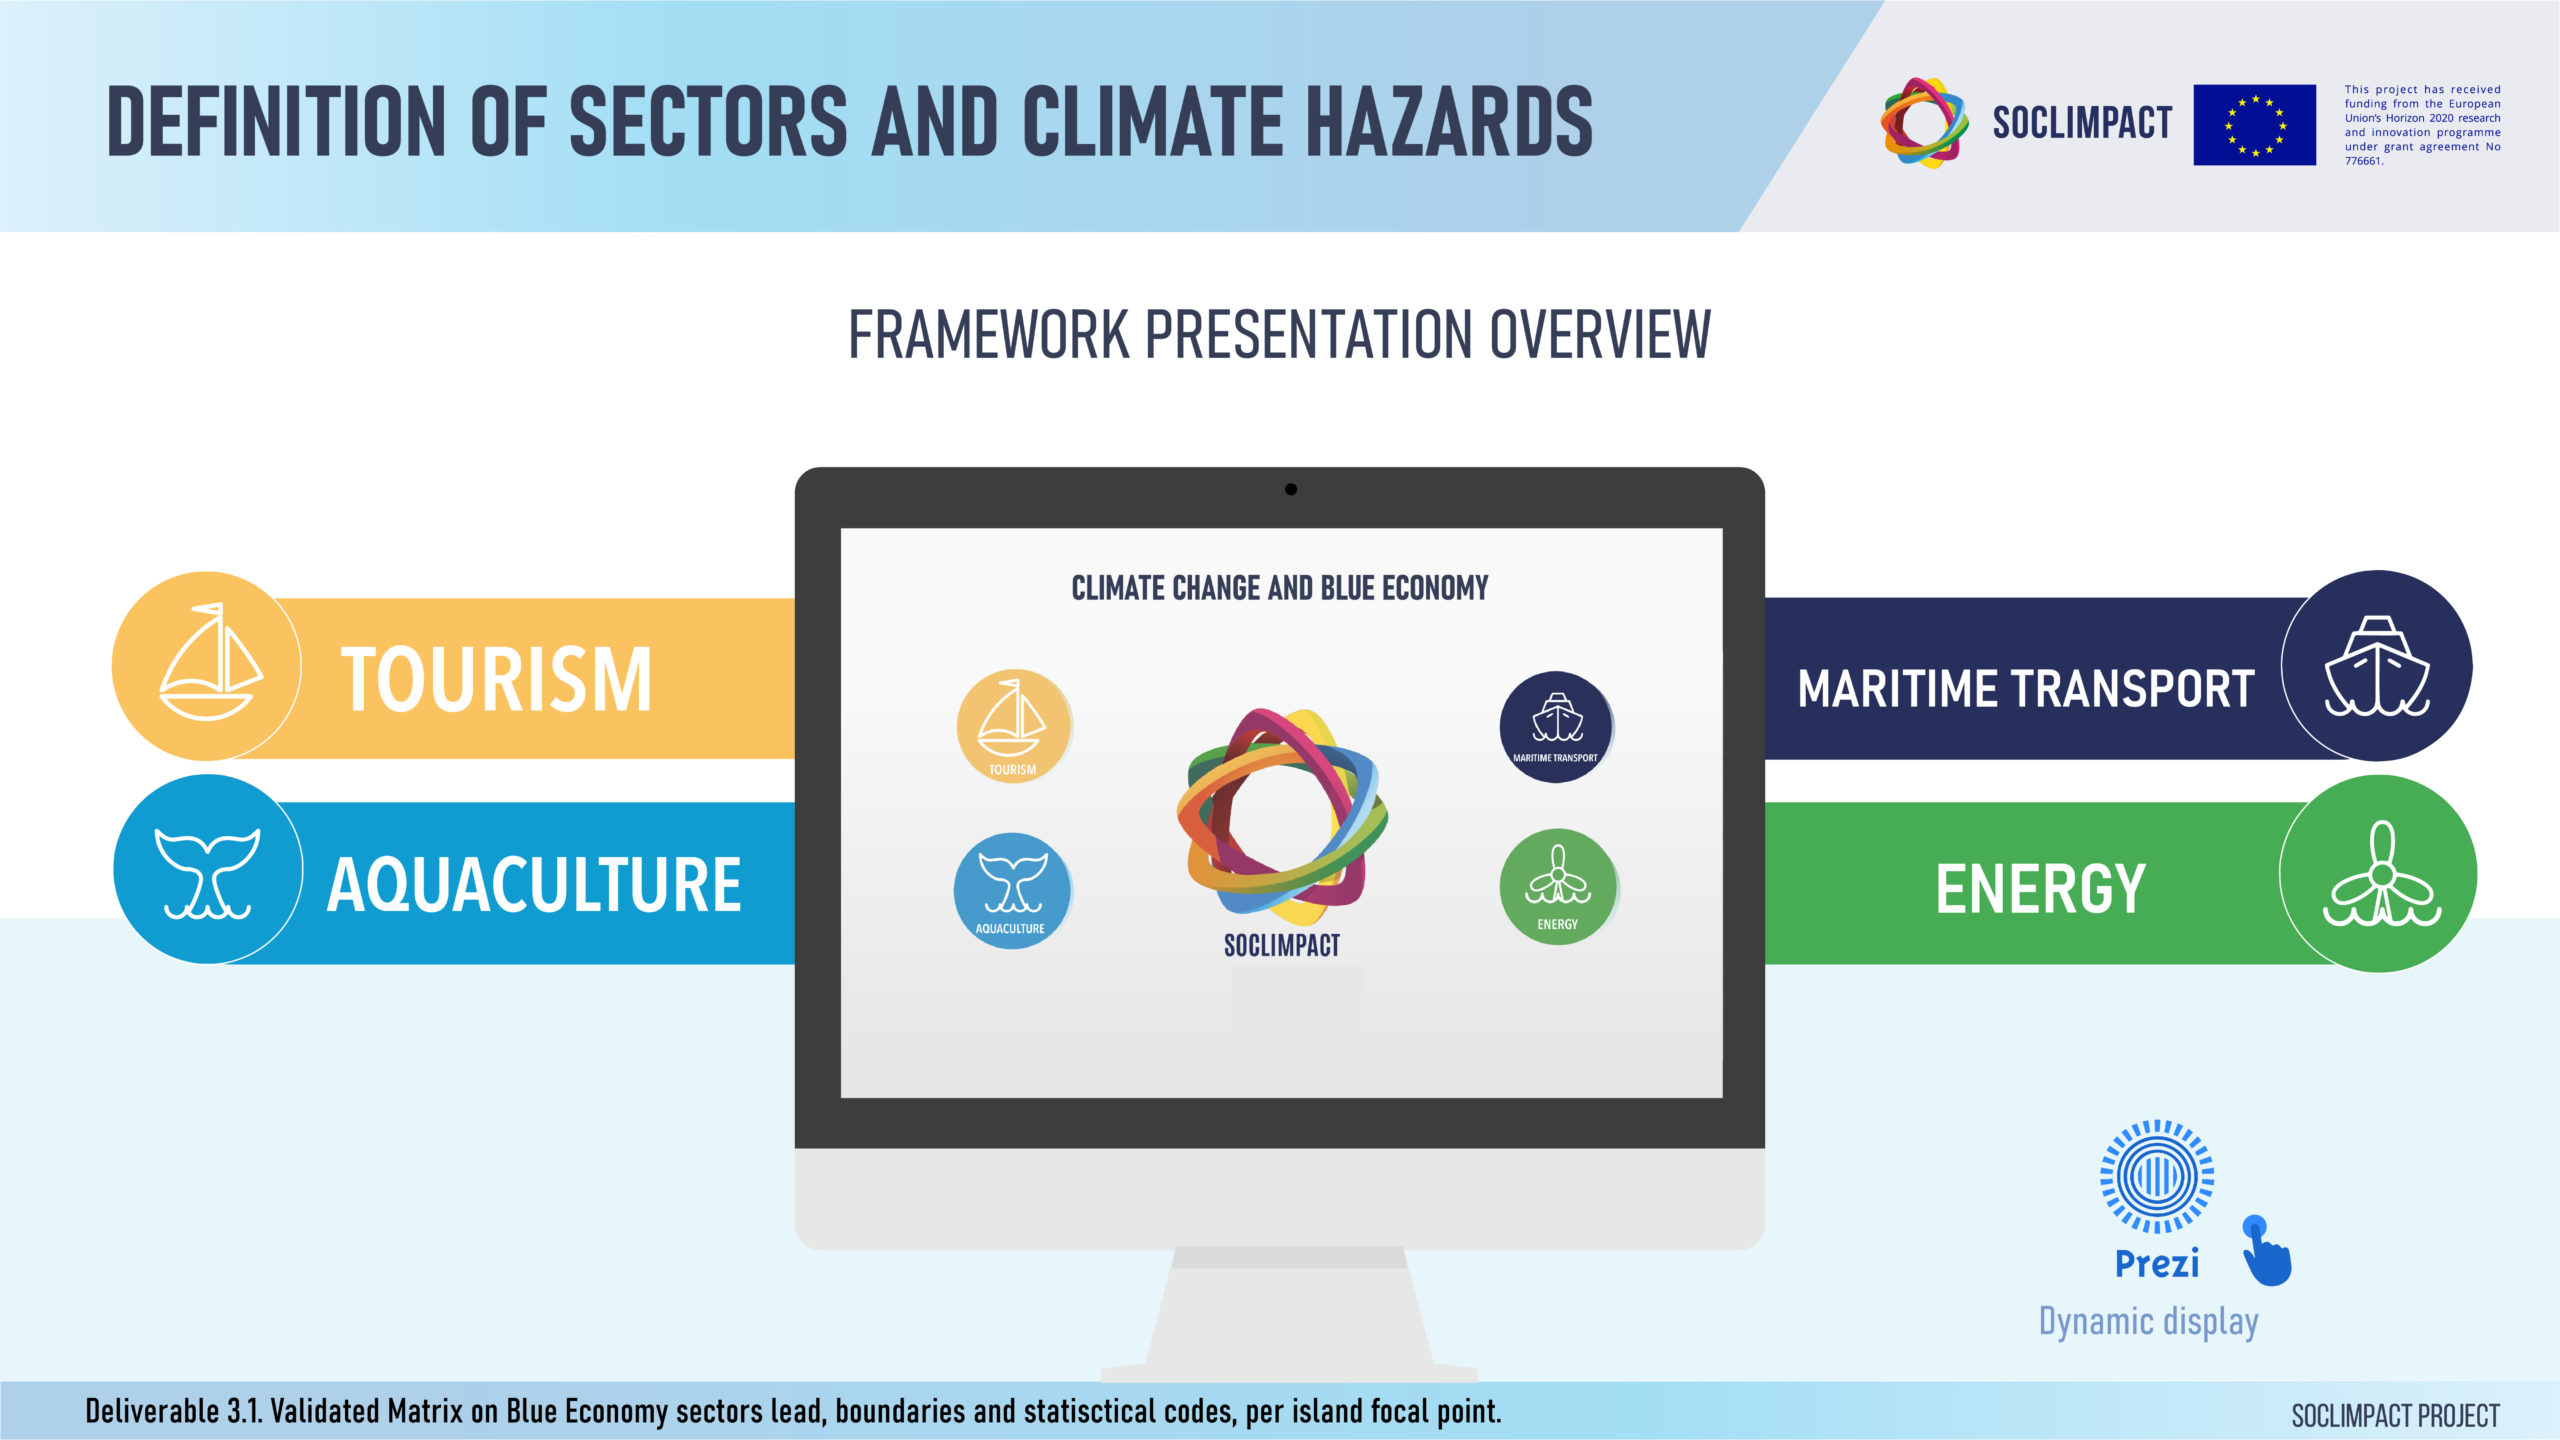 Definition of sectors and climate hazards